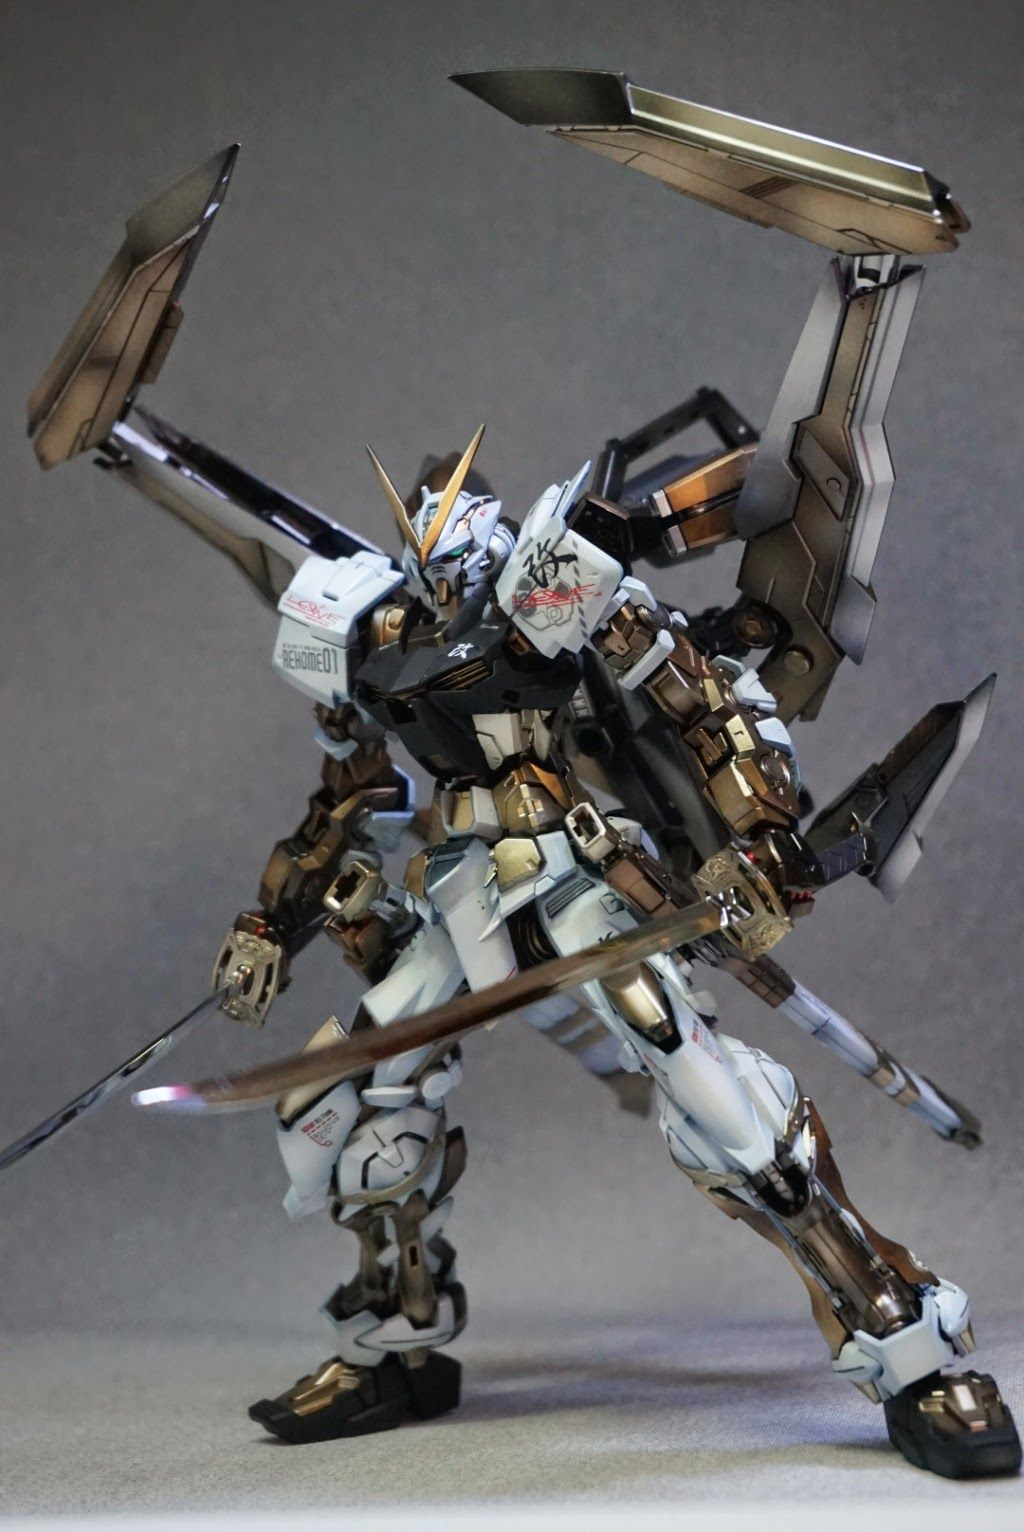 MG 1/100 Astray Gold Frame Kai - Painted Build Images via fg-site.net